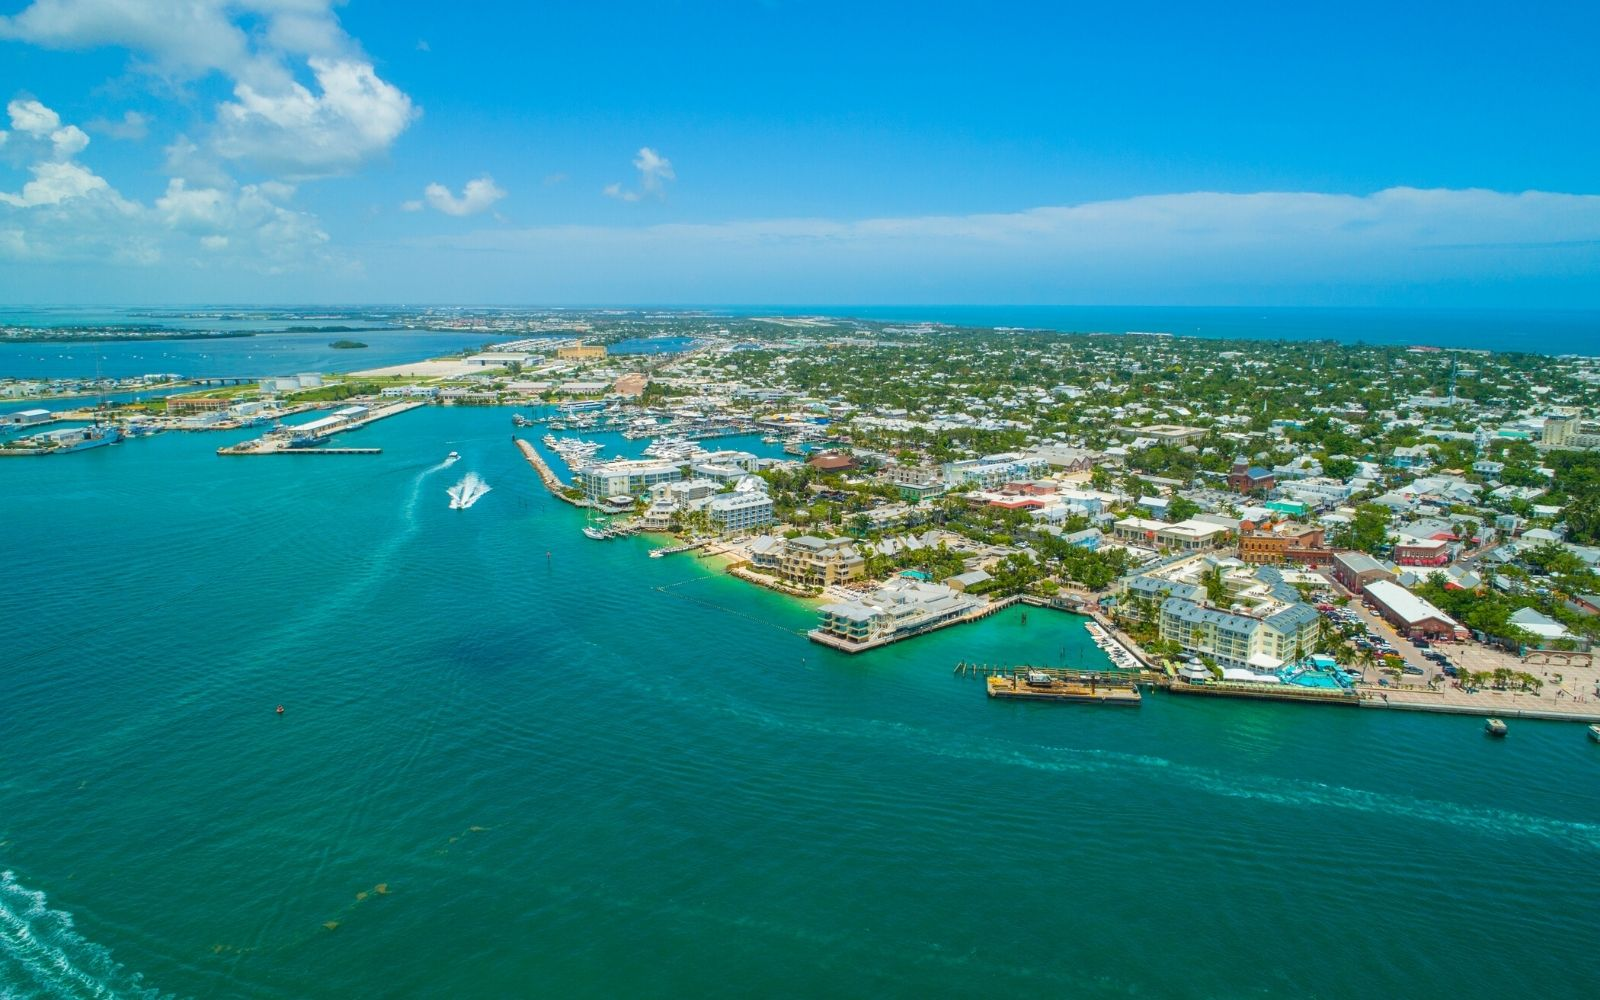 15 Best Things To Do in Key West, Florida